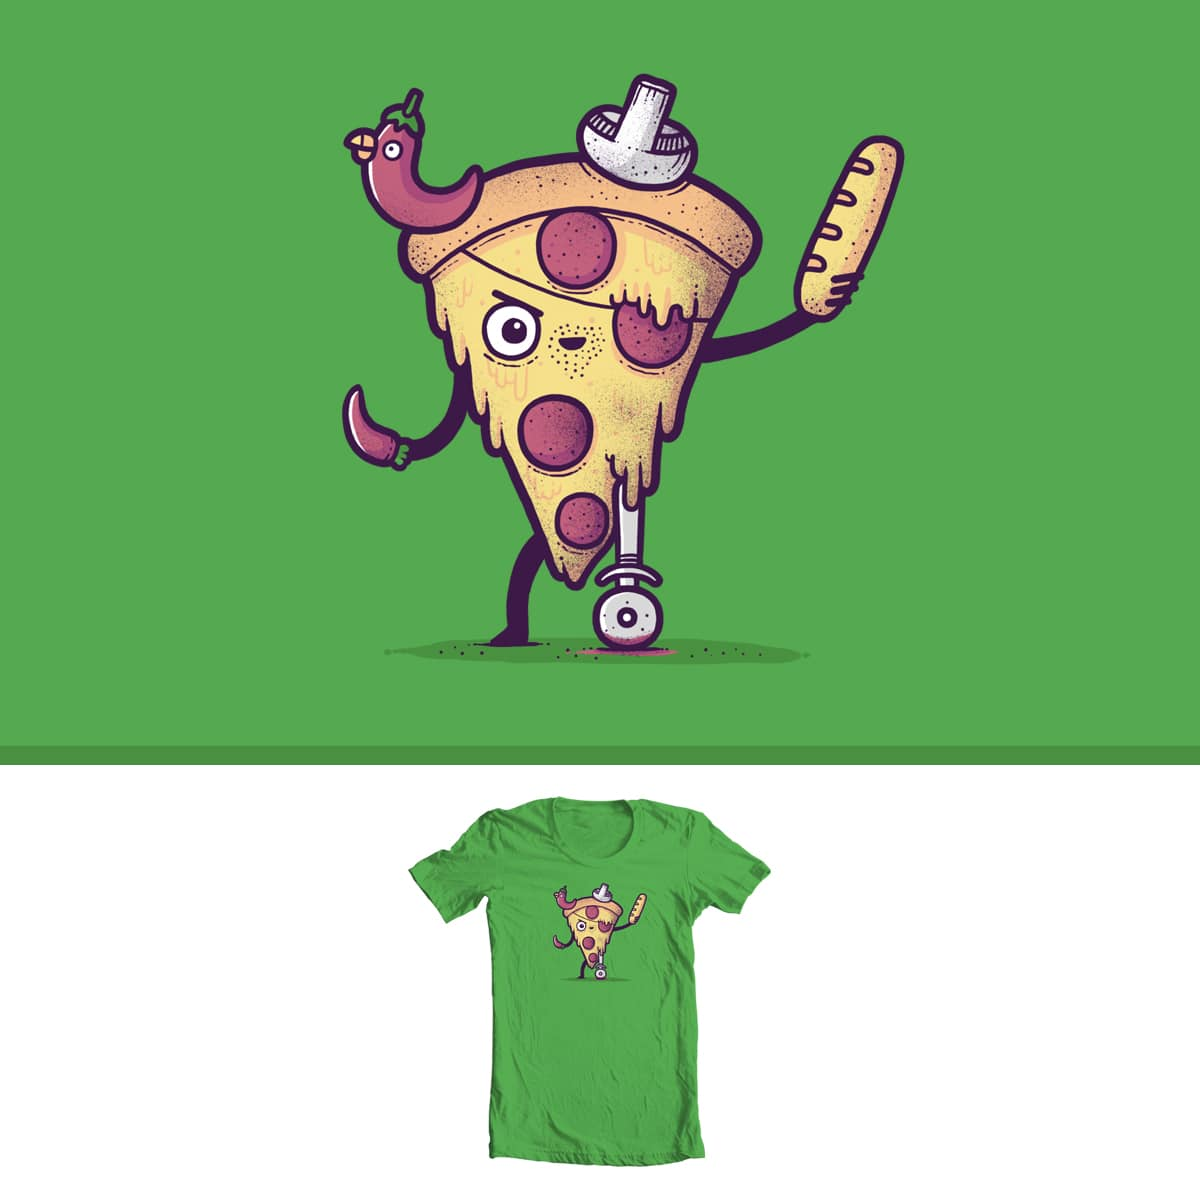 Pizza Pirate by randyotter3000 on Threadless